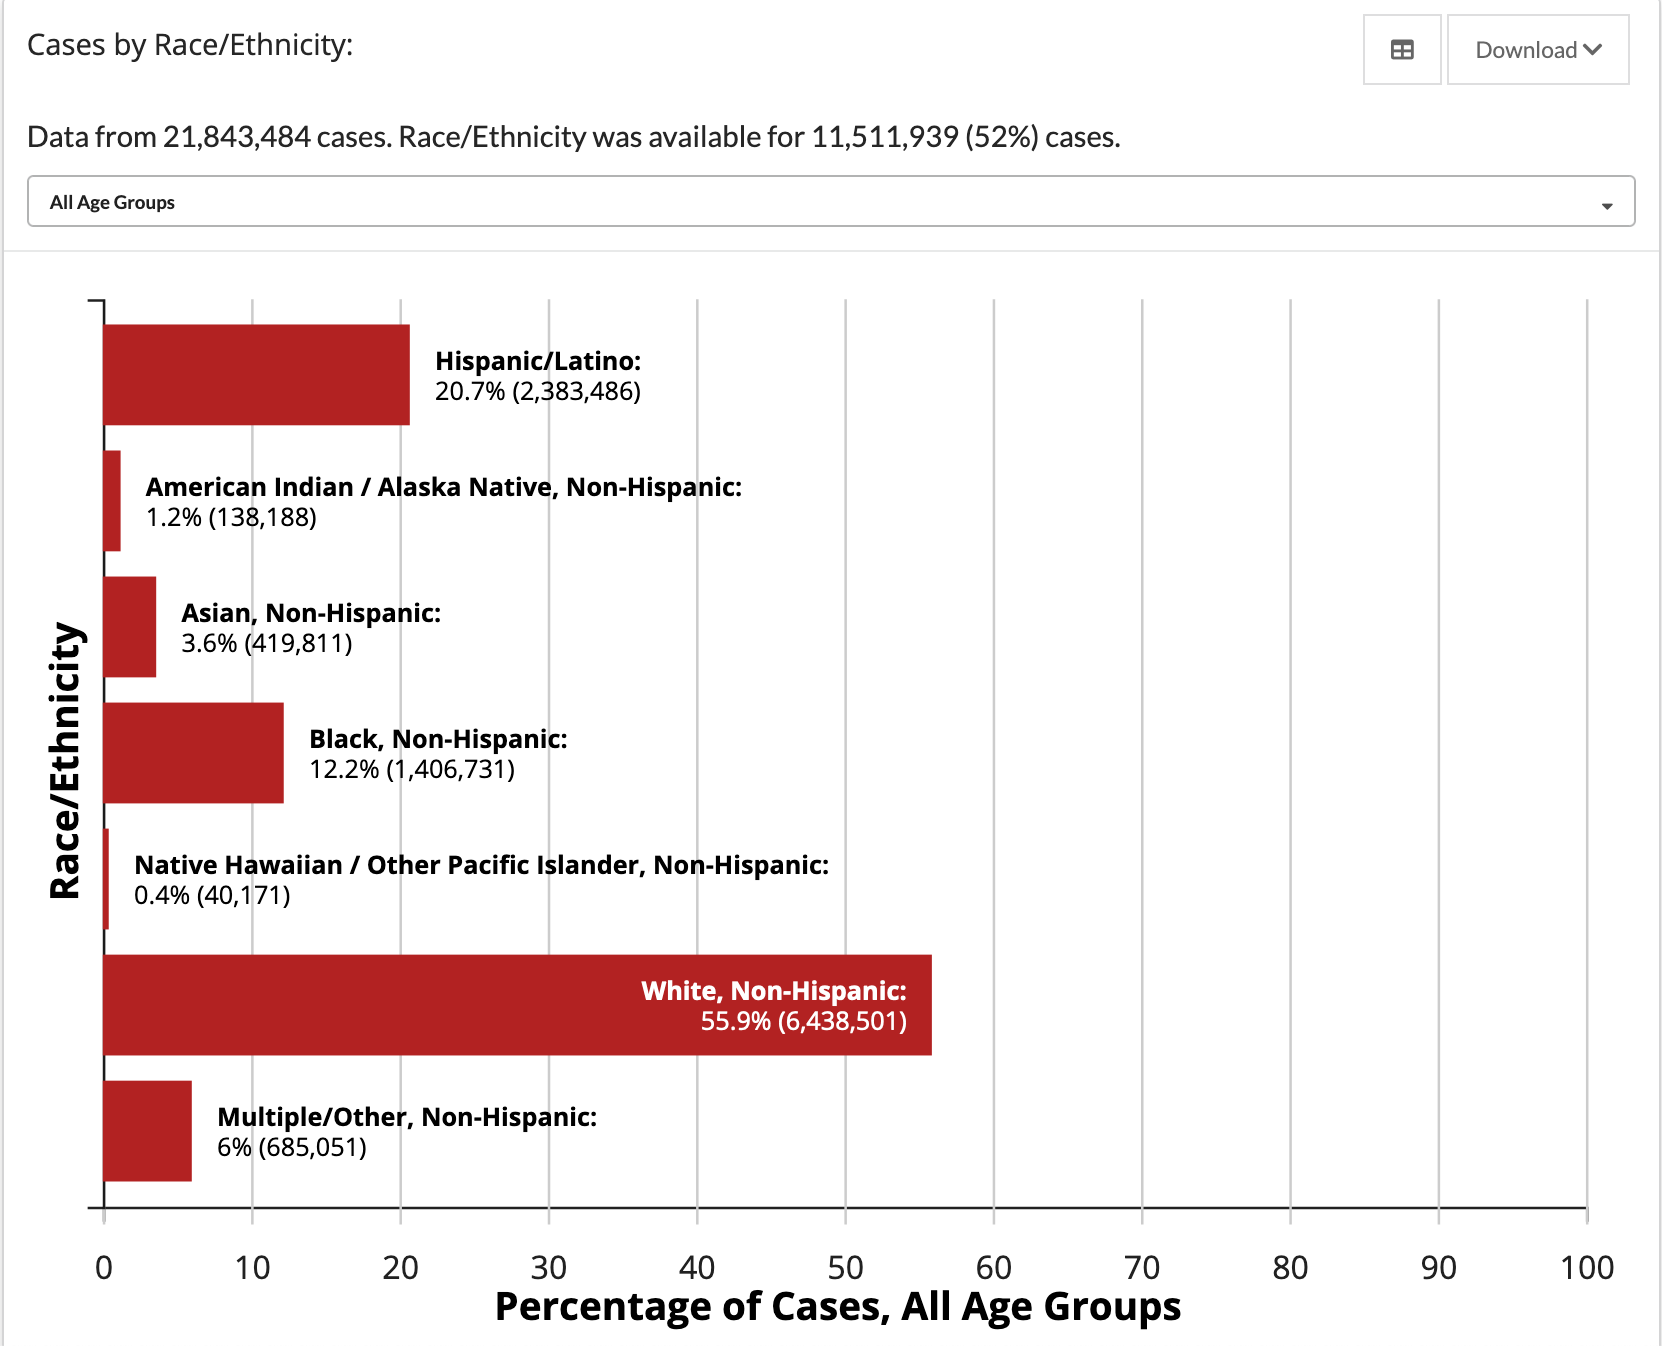 Bar graph showing the percentage of COVID-19 cases by race/ethnicity for 52% of known cases. White, non-Hispanic people are 55.9% of cases, Hispanic/Latino people are 20.7% of cases, Black, non-Hispanic people are 12.2% of cases, Asian, non-Hispanic people are 3.6% of cases, American Indian / Alaska Native people are 1.2% of cases, Native Hawaiian people are are .4% of cases, and multiple/other non-Hispanic people are 6% of cases.